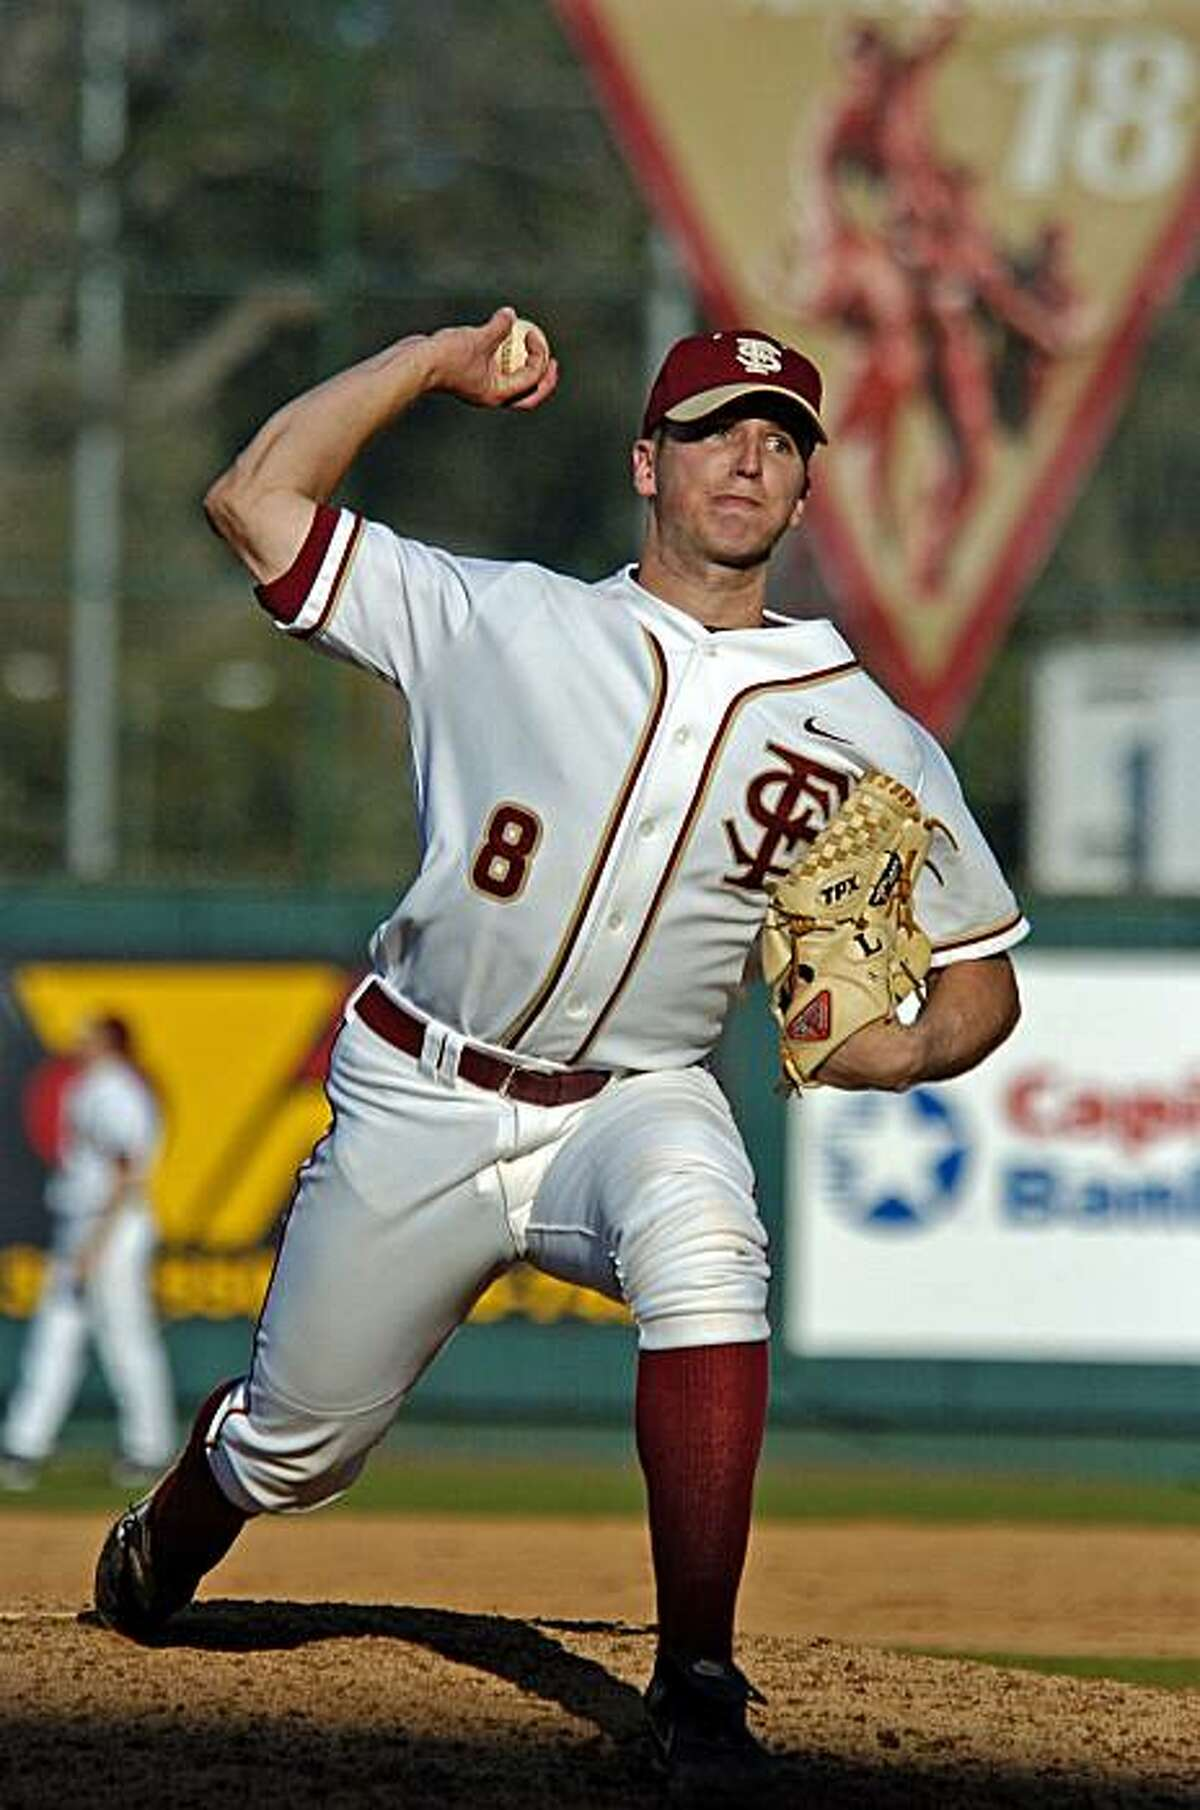 Buster Posey, pitching for Florida State.